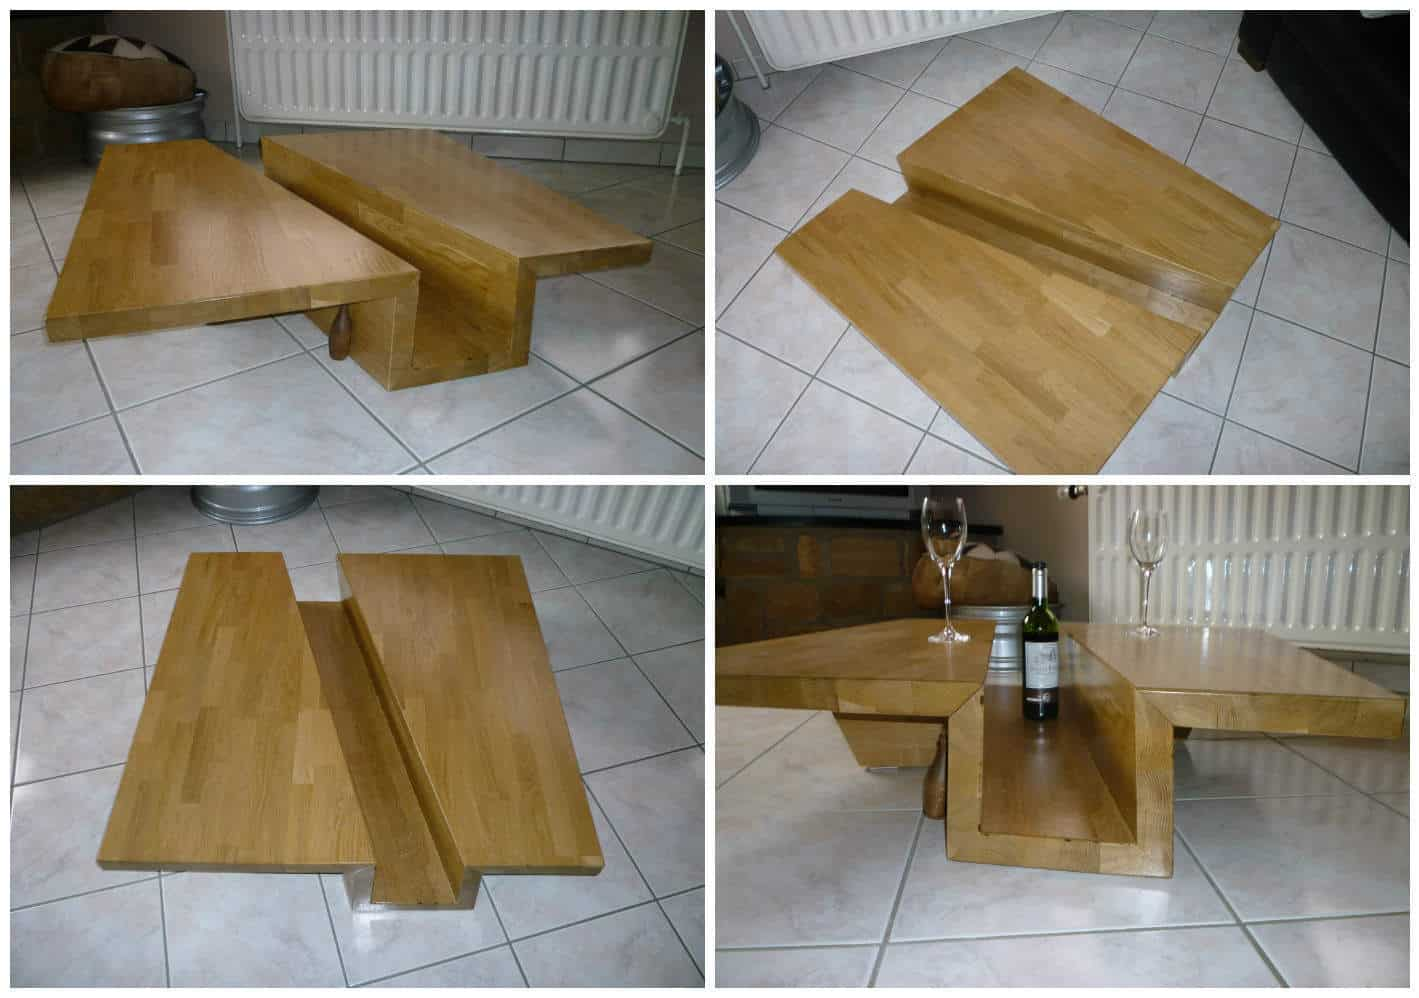 Table basse ch ne massif lamell coll solid glulam oak coffee table pall - Table basse chene huile ...